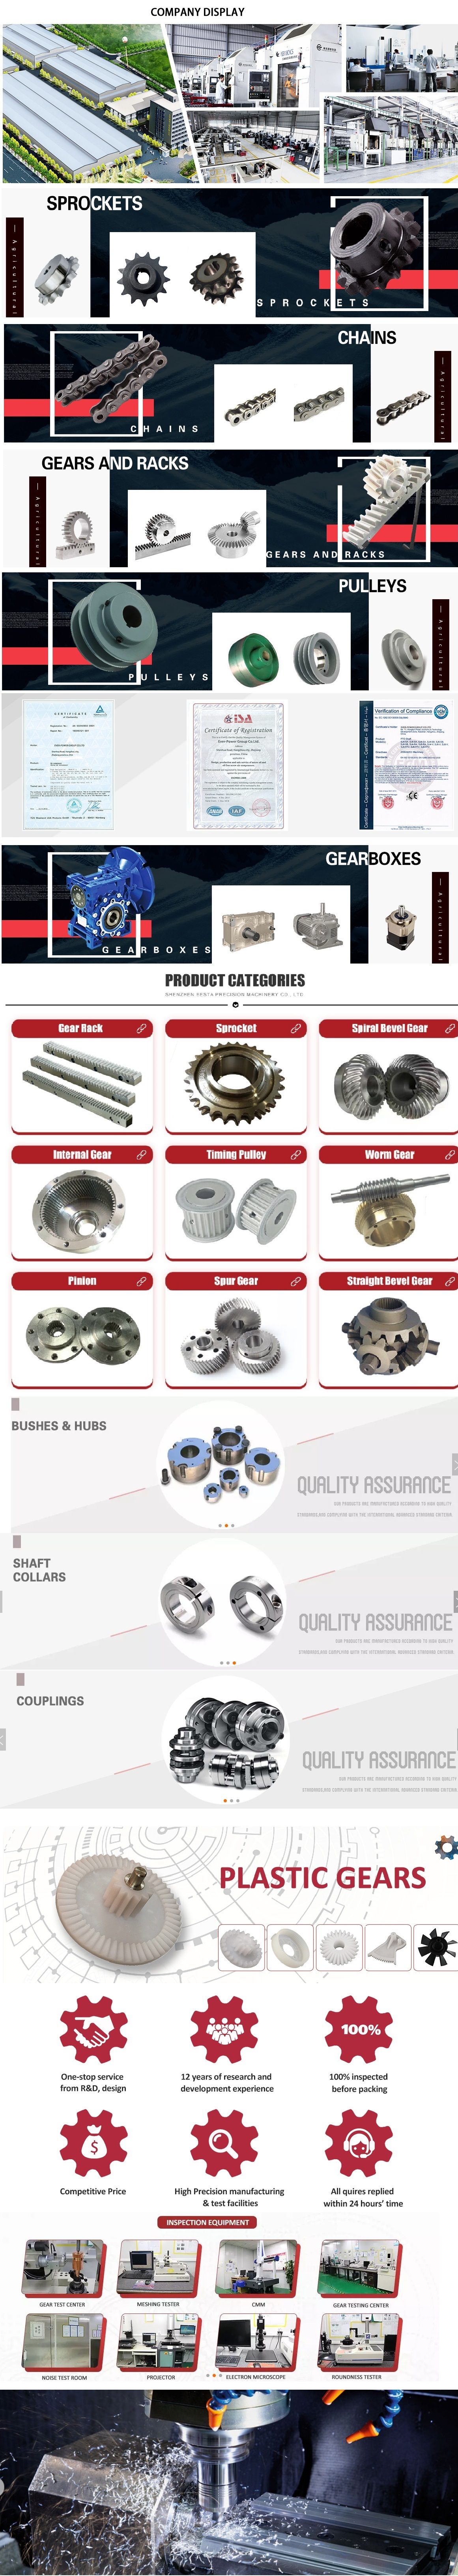 in Rostov-on-Don Russian Federation  sales   price   shop   near me   near me shop   factory   supplier Customized High Precision Alloy Steel Bevel Gear Helical Gear manufacturer   best   Cost   Custom   Cheap   wholesaler